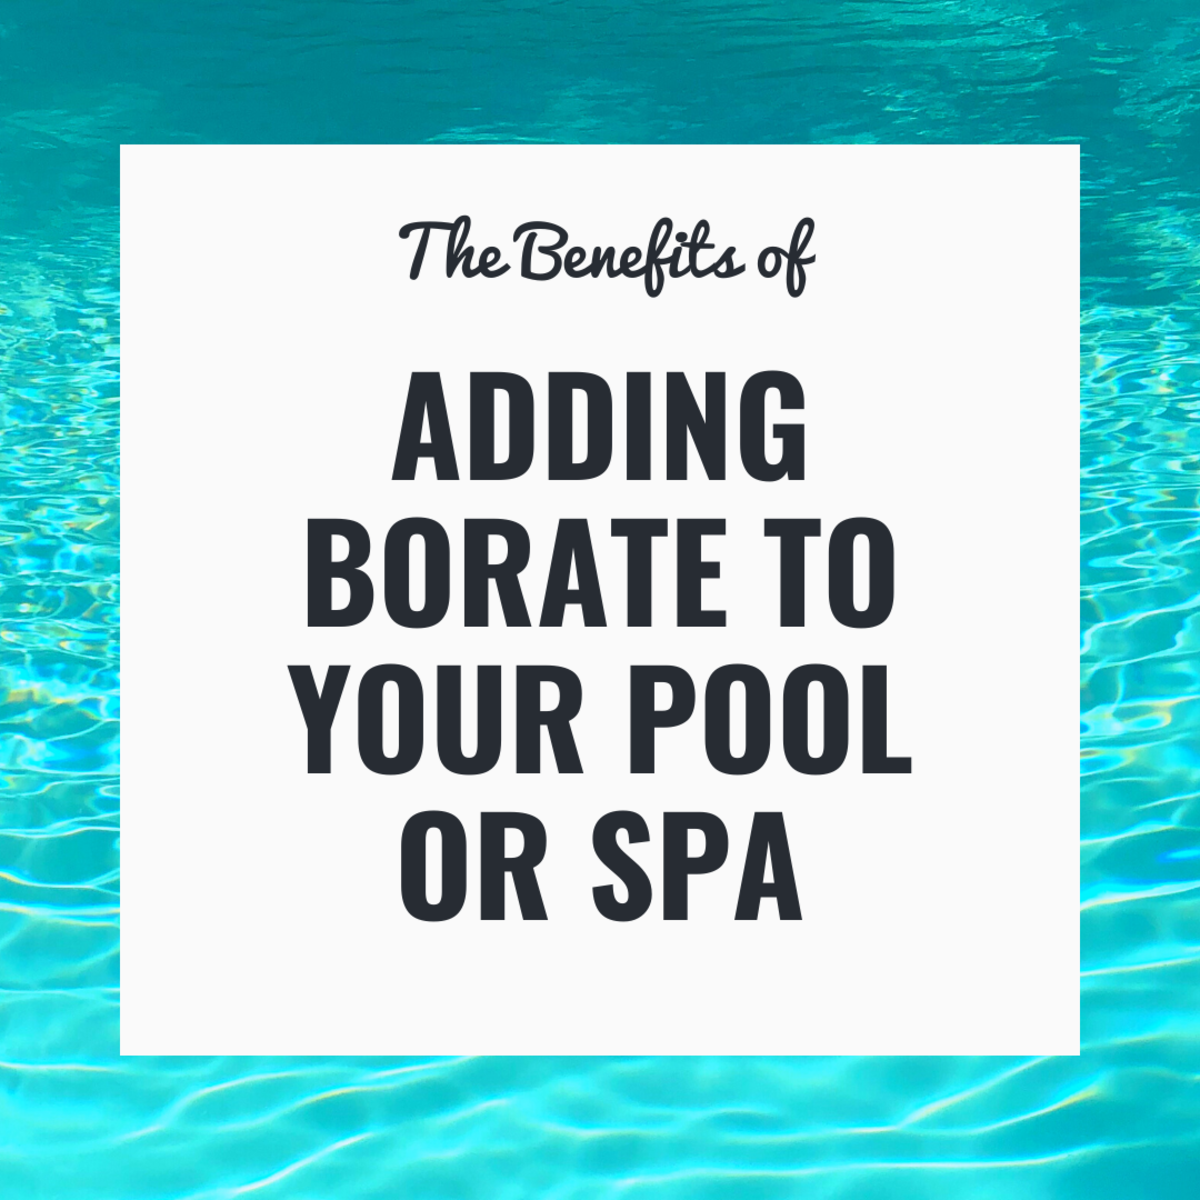 Borate prevents pH drifting, which results in calcium scaling, metal stains, cloudy water, algae, and hard pool water.